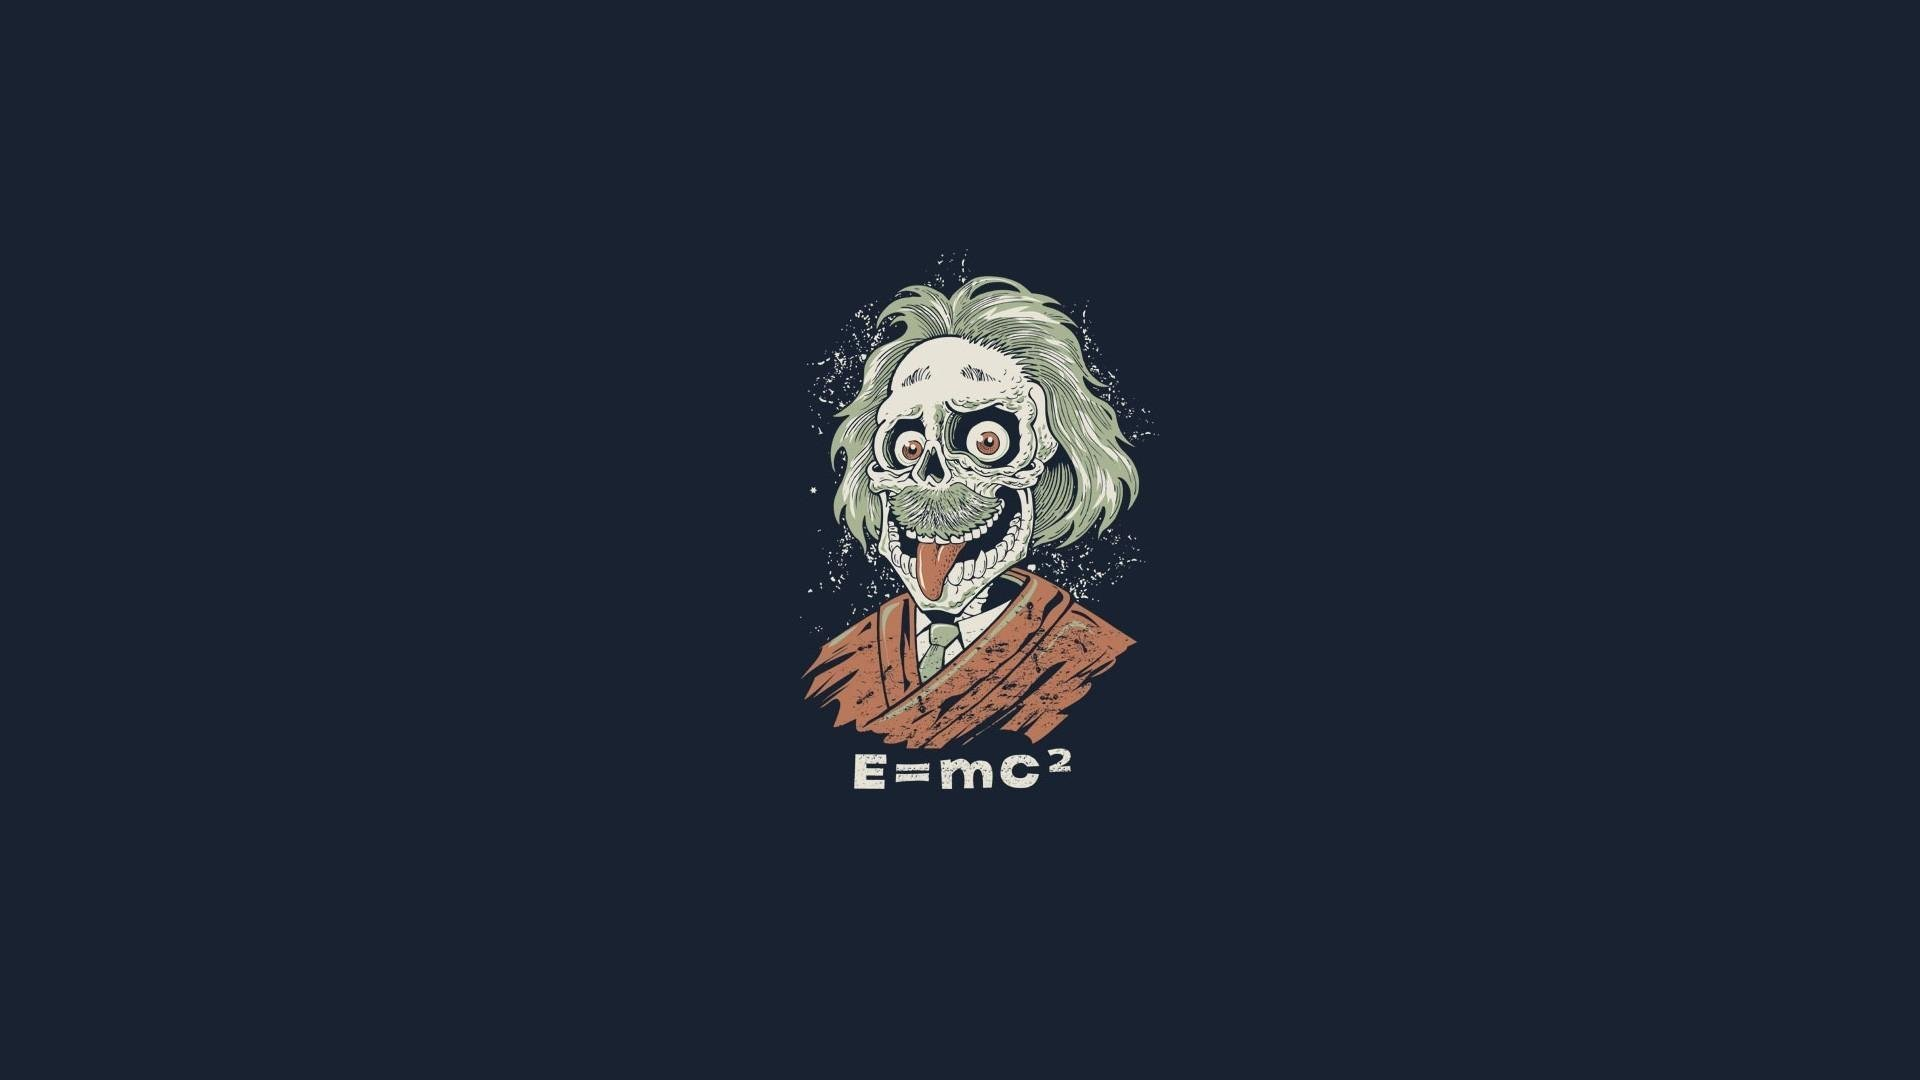 free hd wallpapers zombie - photo #30